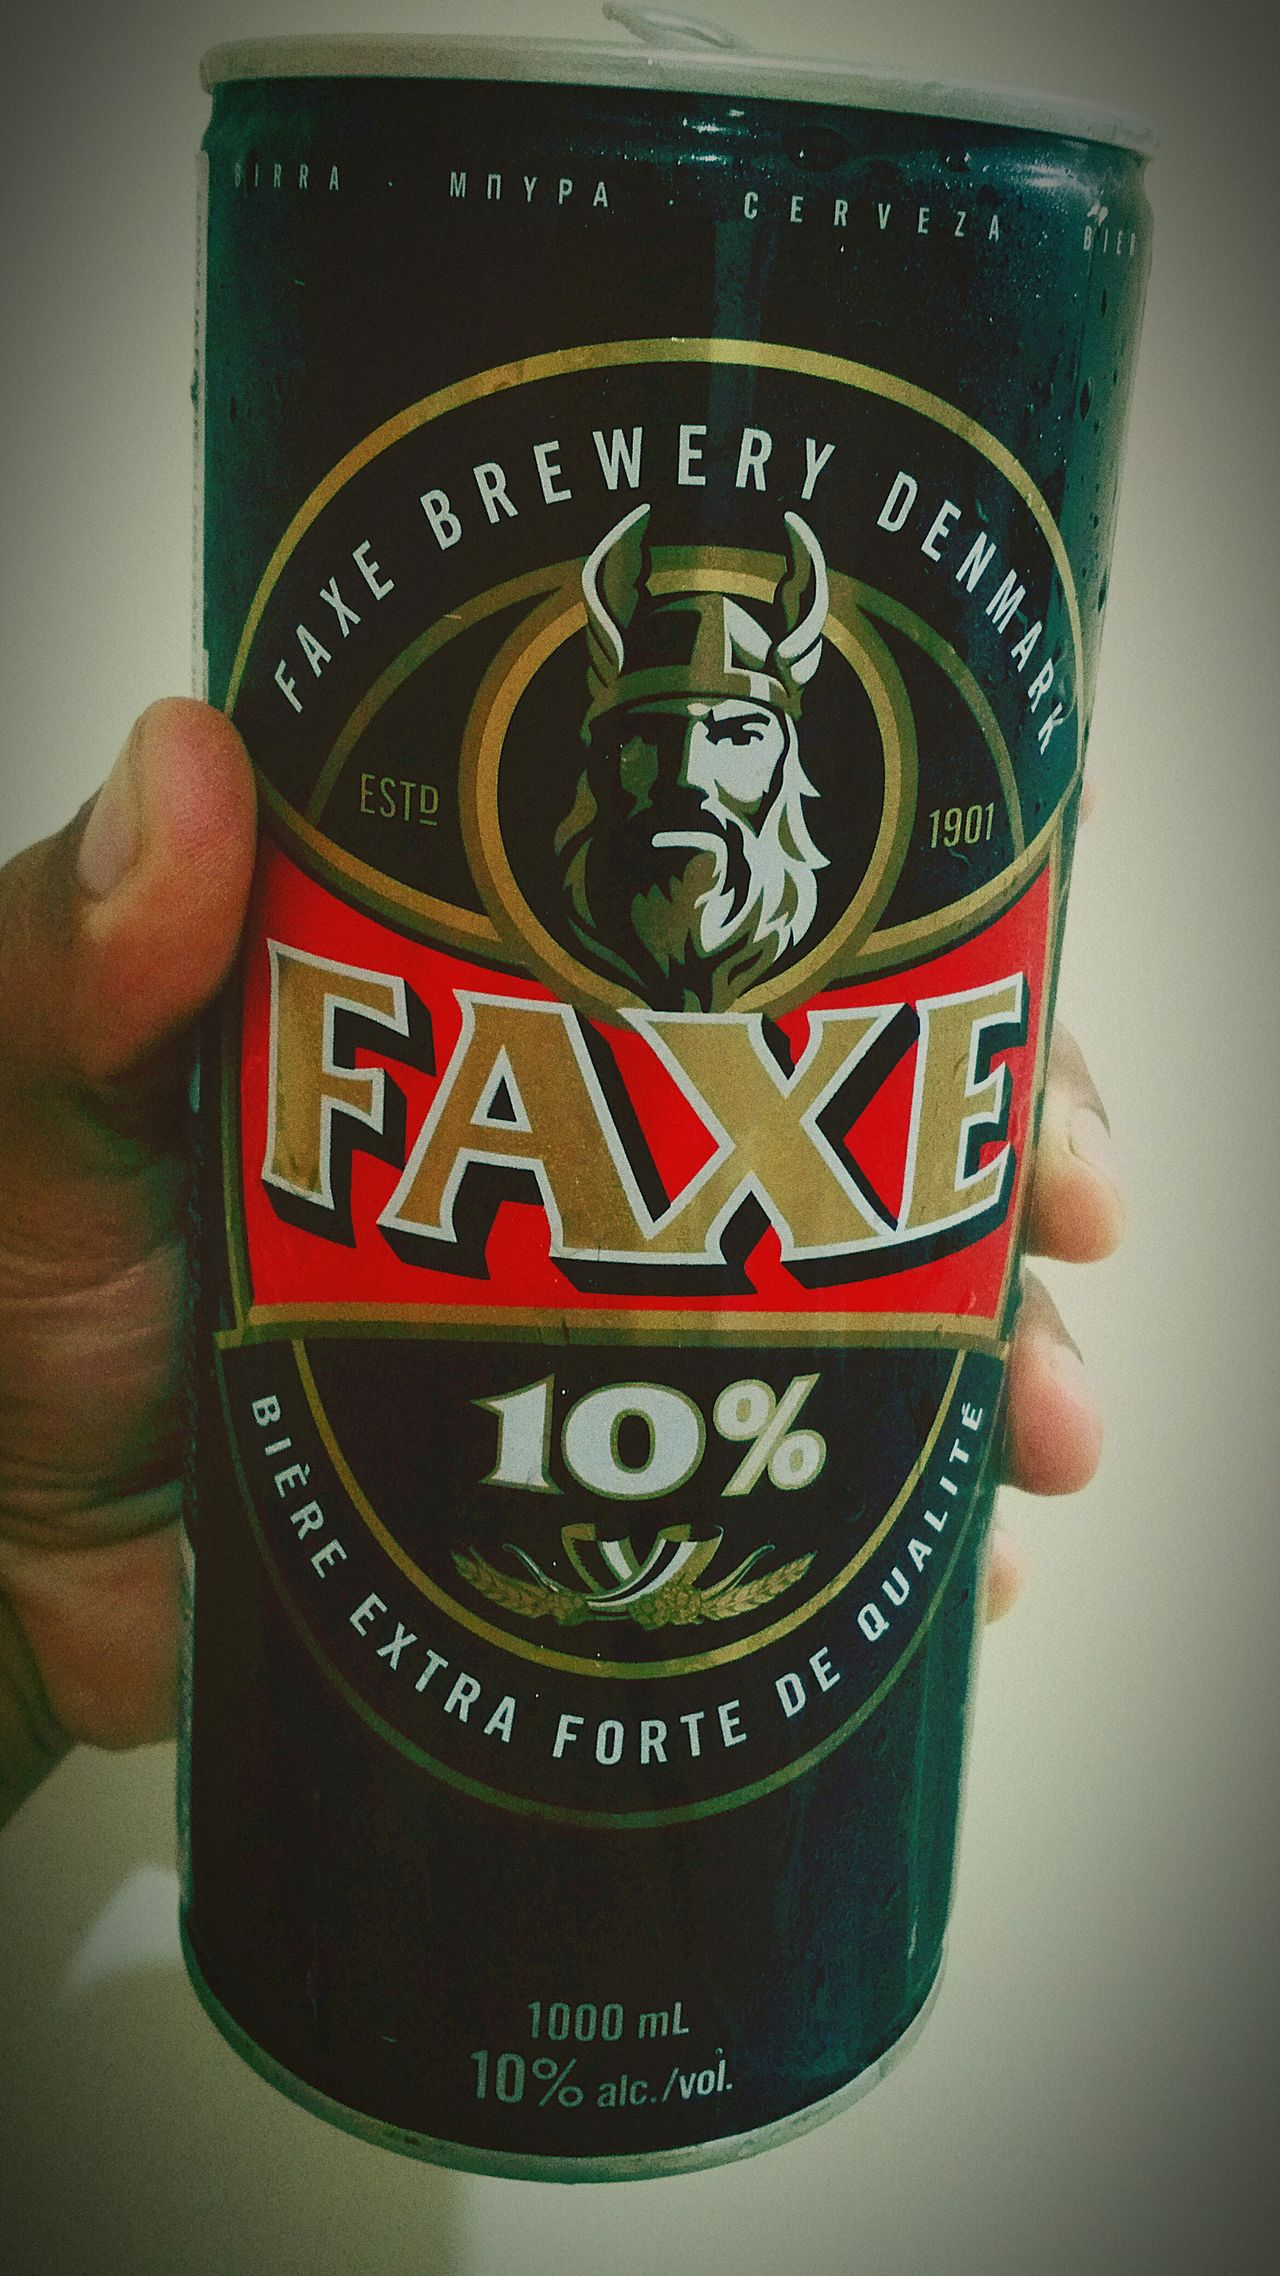 Beer Beer Time Cerveza Cerveja Faxe Human Hand Close-up Adults Only Adult Viking Strong Strongbeer 10% Alcool  Alcohol Alcoholic Drink